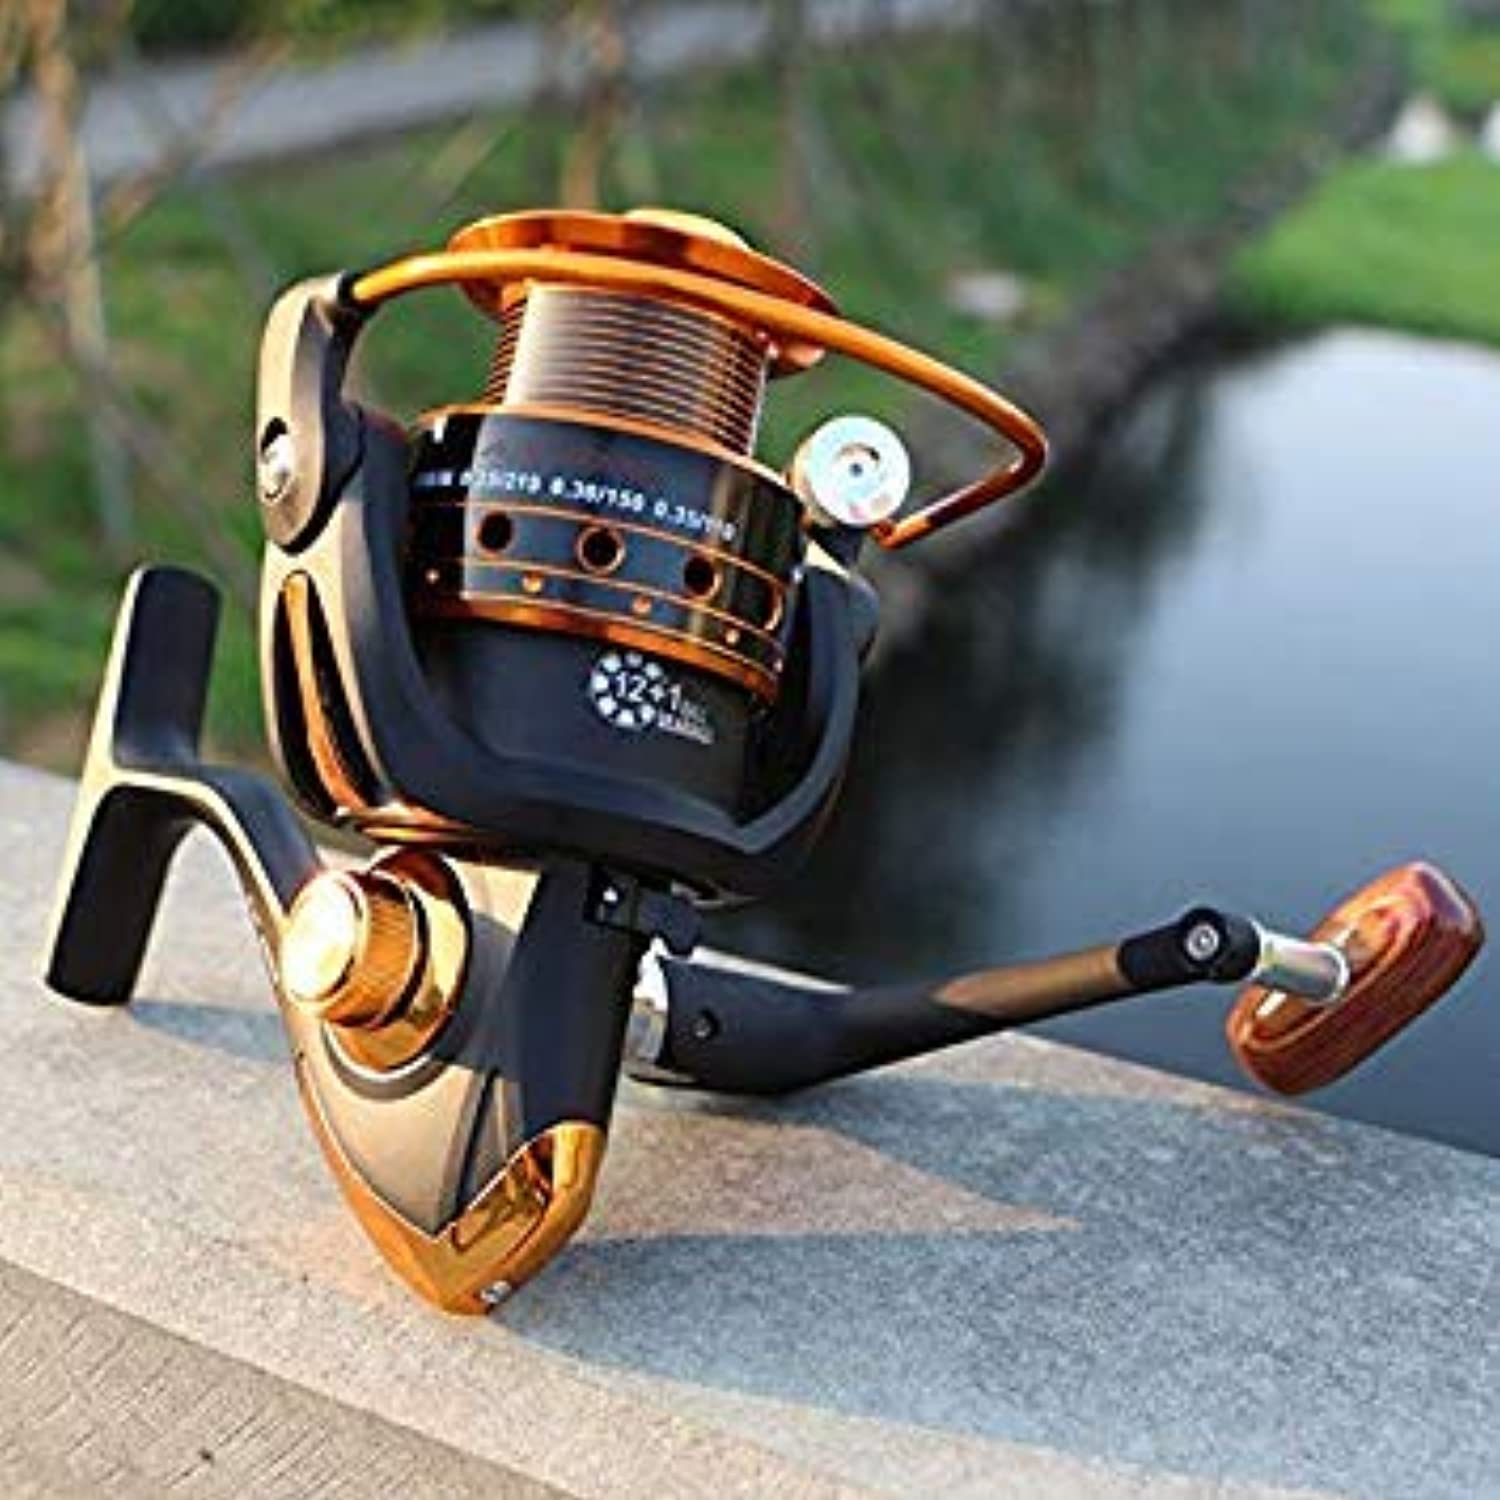 GEOPONICS Spinning Fishing Reel 12BB + 1 Bearing Balls 5009000 Series Metal Coil Spinning Reel Boat Rock Fishing Wheel color Black Bearing Quantity 13 Spool Capacity 4000 Series